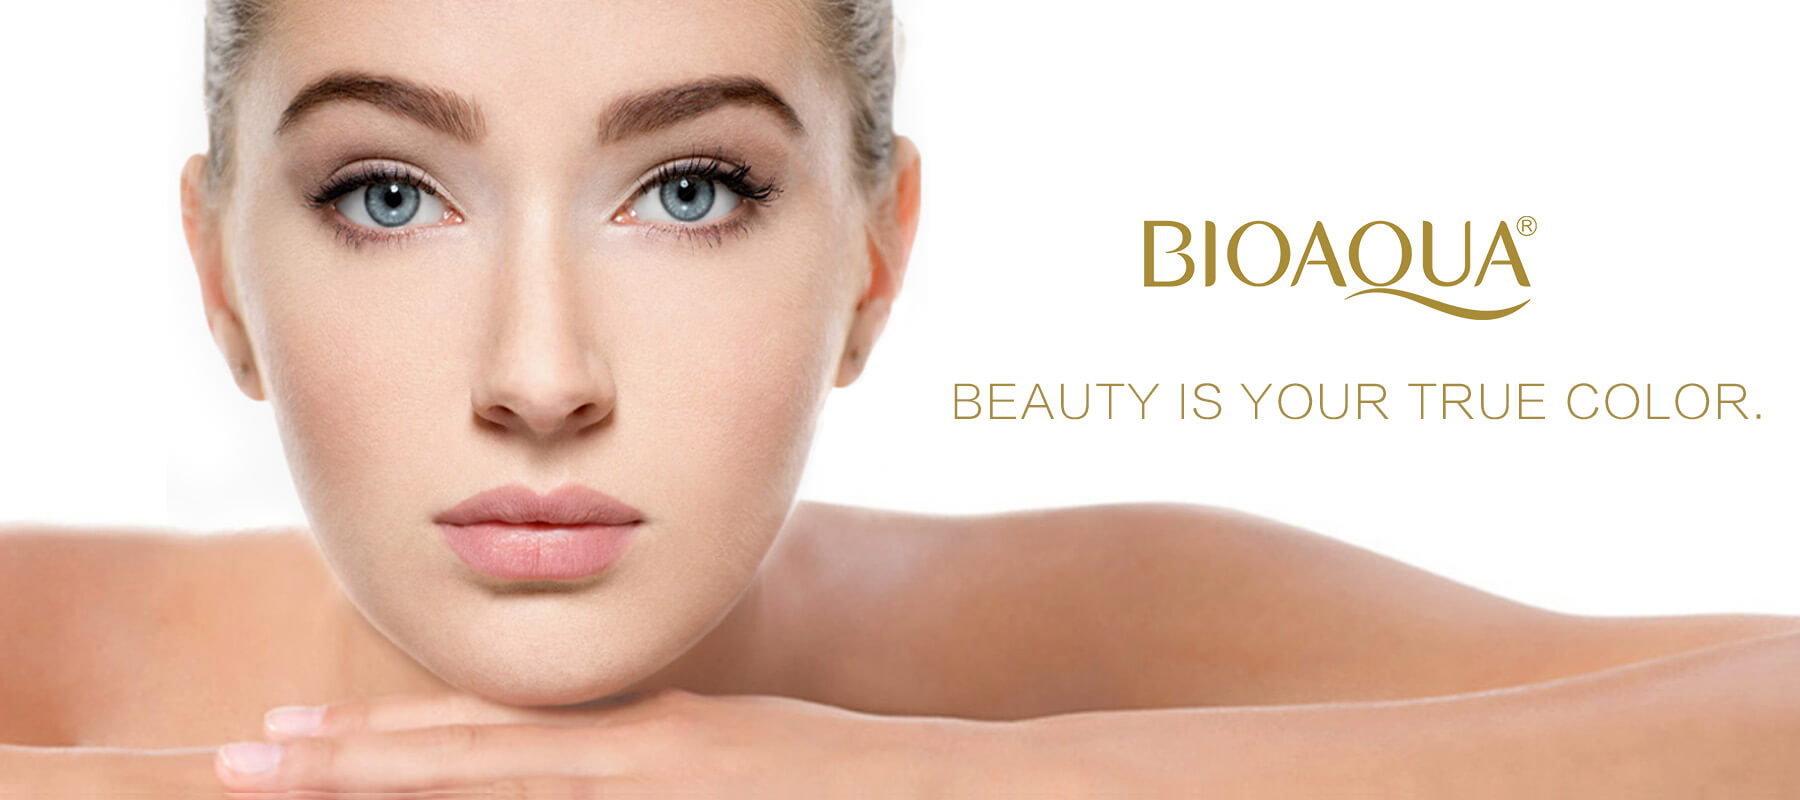 BIOAQUA brand. Beauty is your true color.